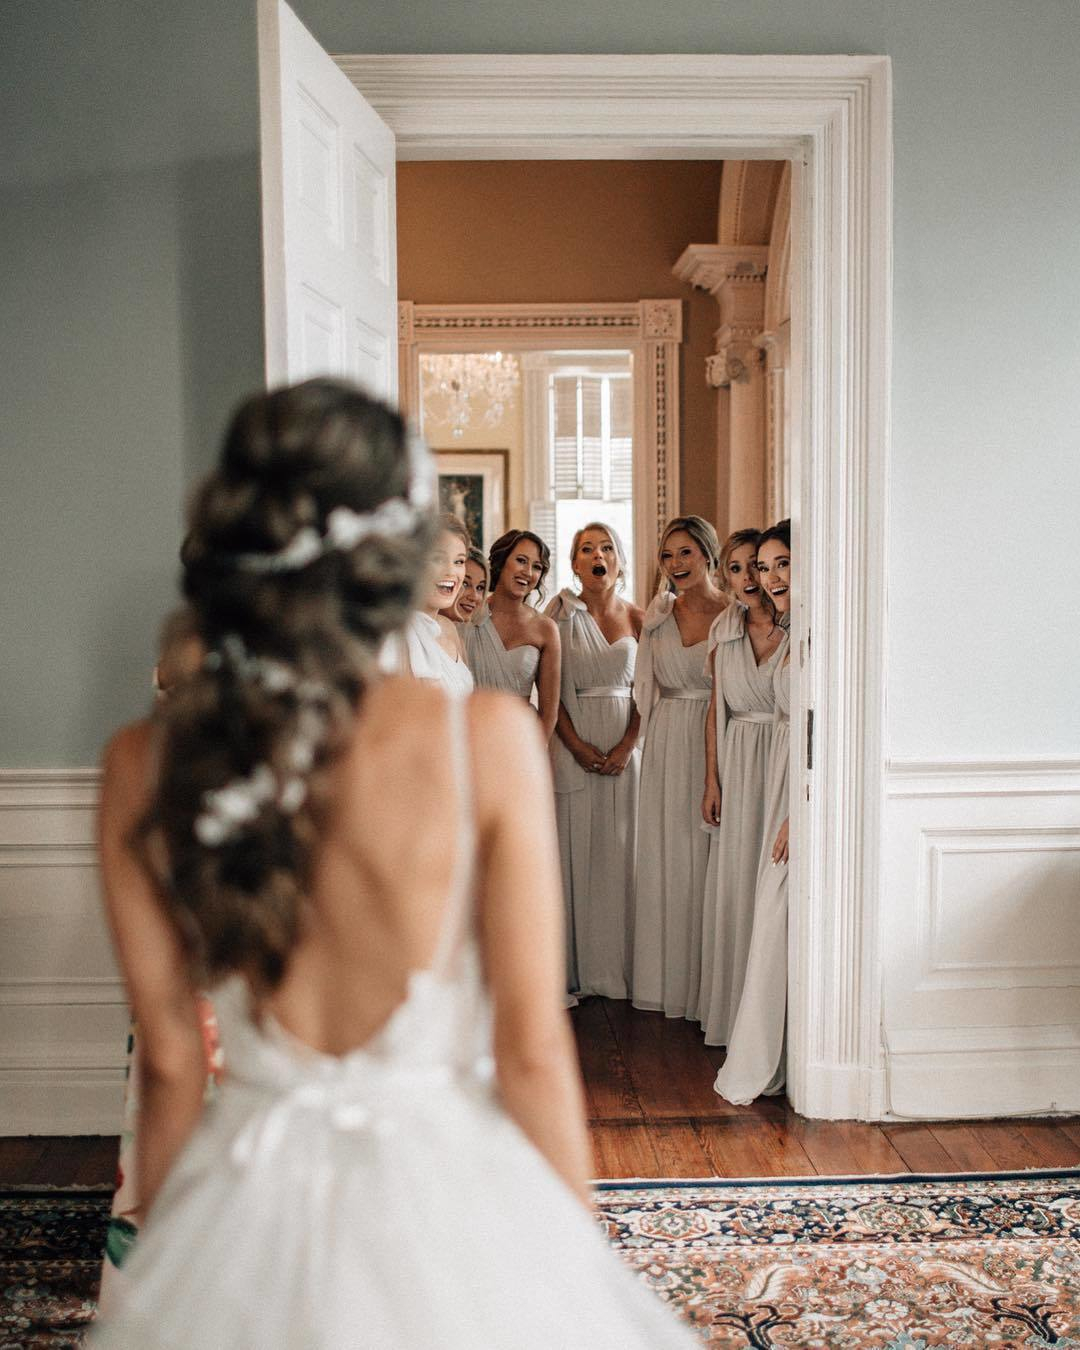 20-wedding-makeup-ideas-to-suit-every-bride-2019